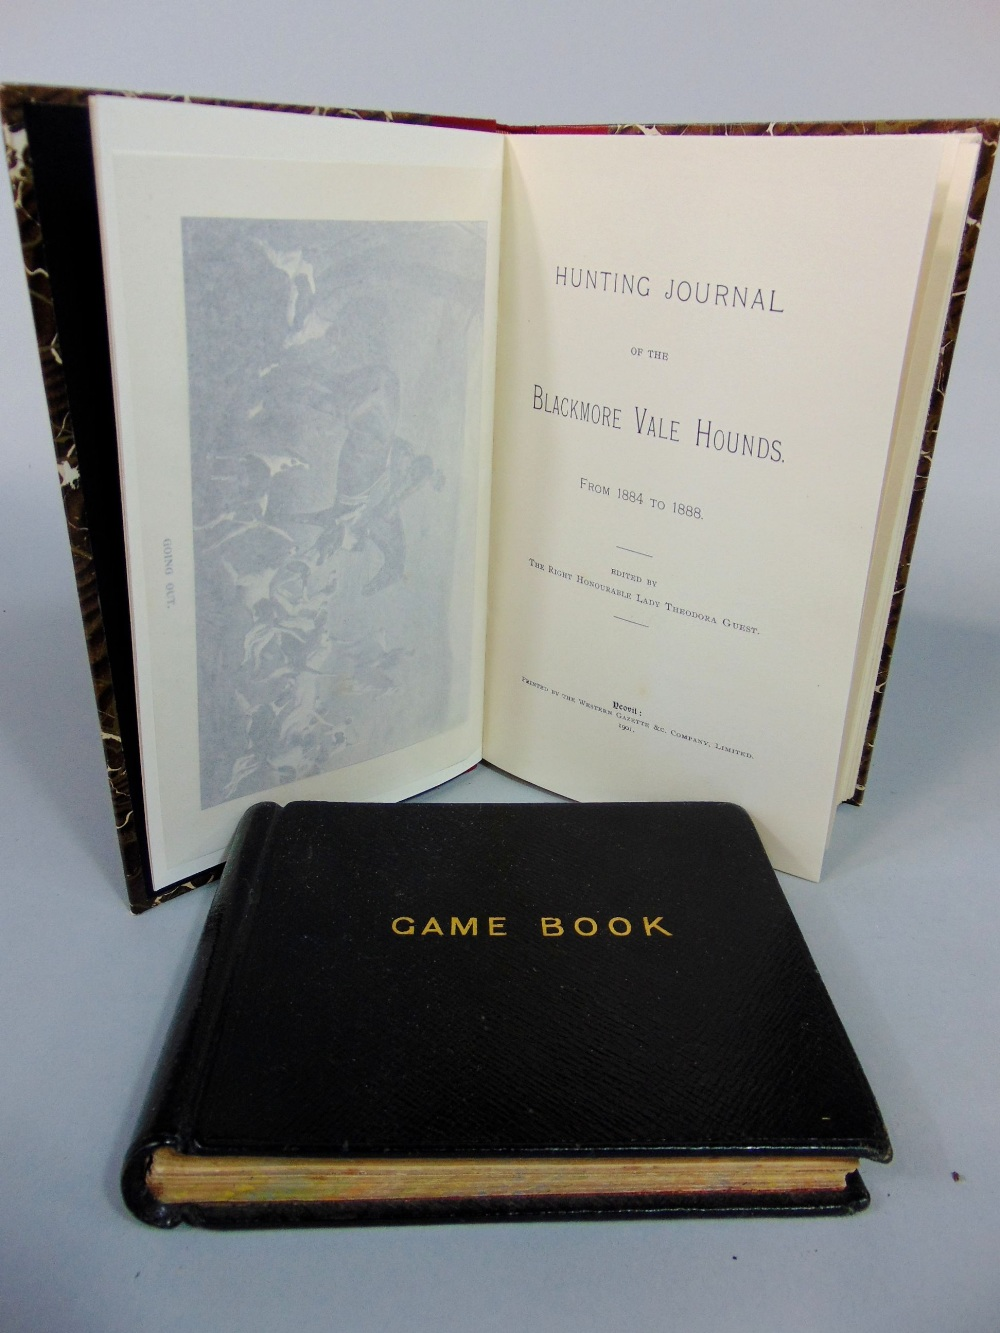 Lot 706 - Hunting Journal of the Blackmore Vale Hands 1884-1888, edited by the Right Honourable Lady